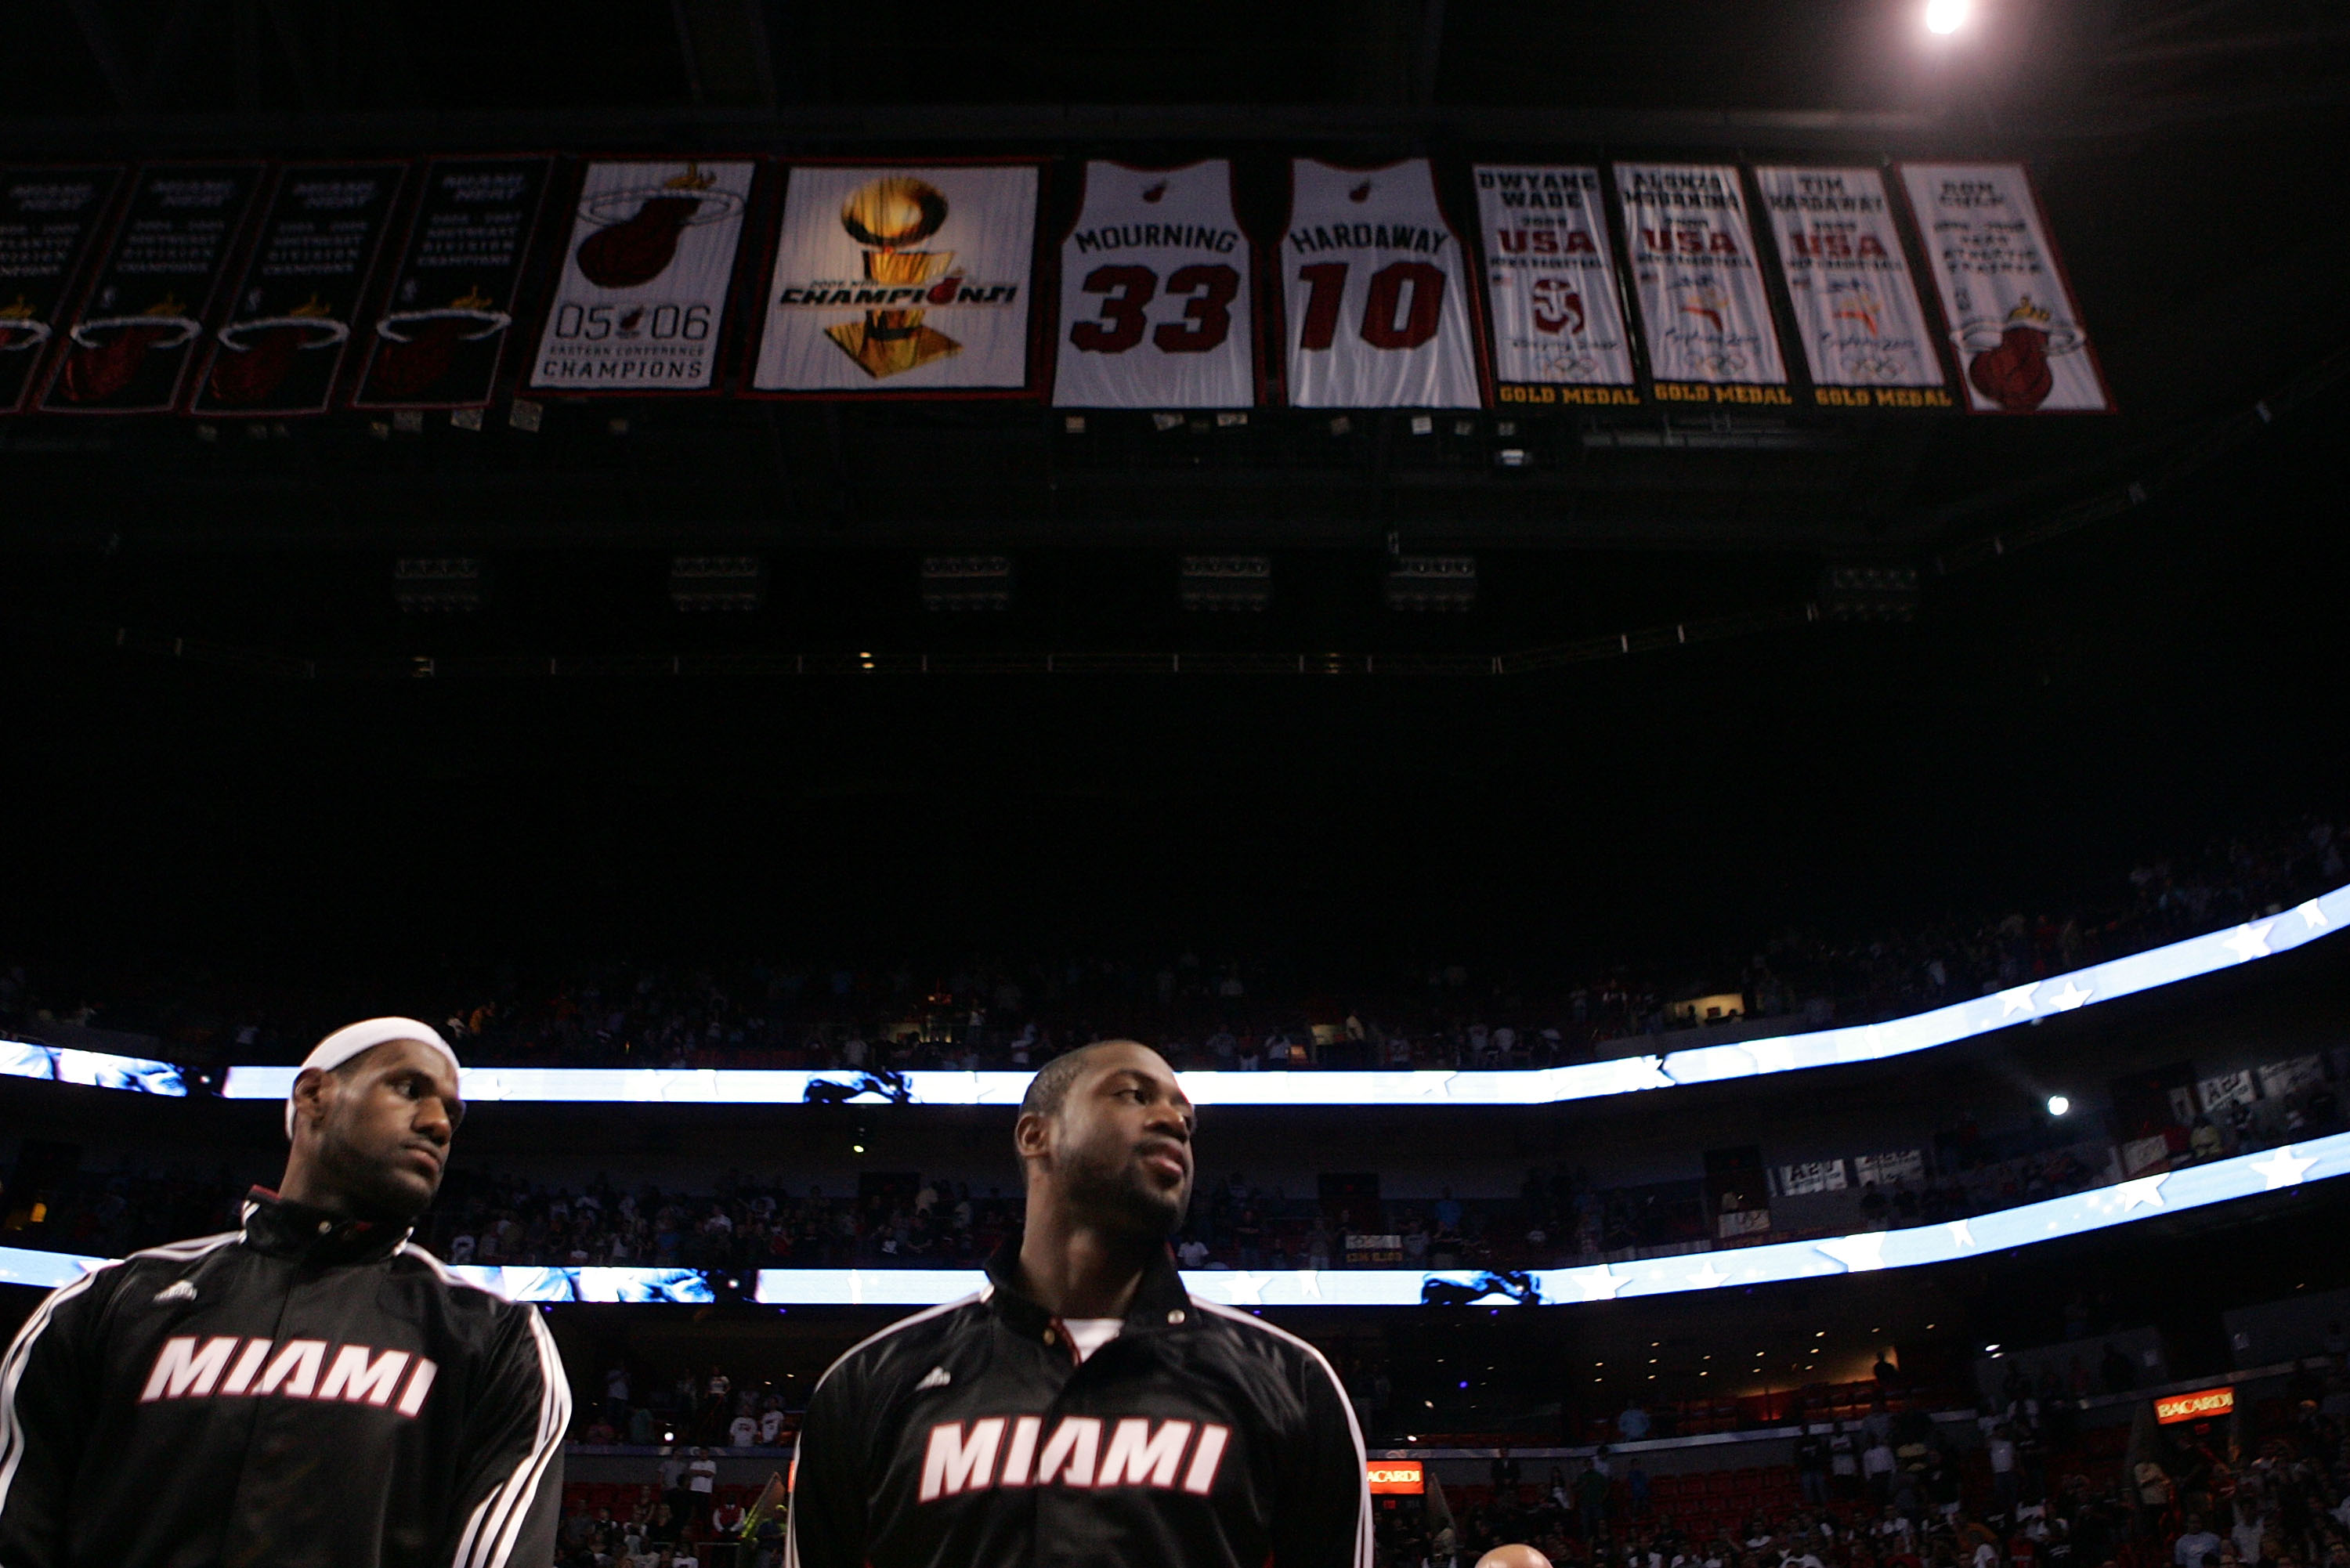 MIAMI - OCTOBER 12:  Forward LeBron James #6 and Dwyane Wade #3 of the Miami Heat prior to playing CSKA Moskow on October 12, 2010 in Miami, Florida.  NOTE TO USER: User expressly acknowledges and agrees that, by downloading and or using this photograph,